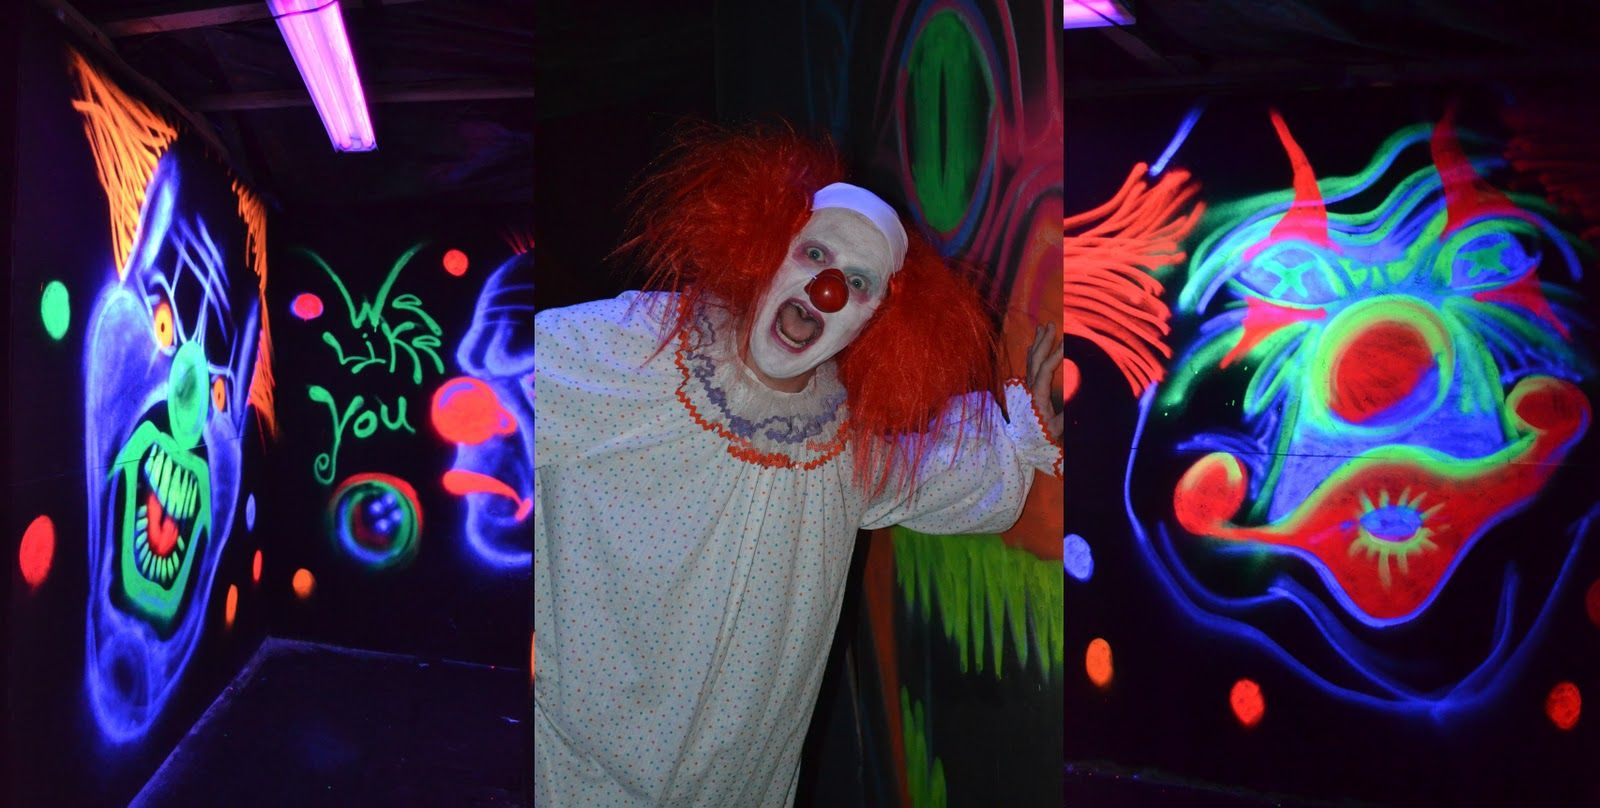 Haunted House Room Ideas Third Room Was The Clown Room